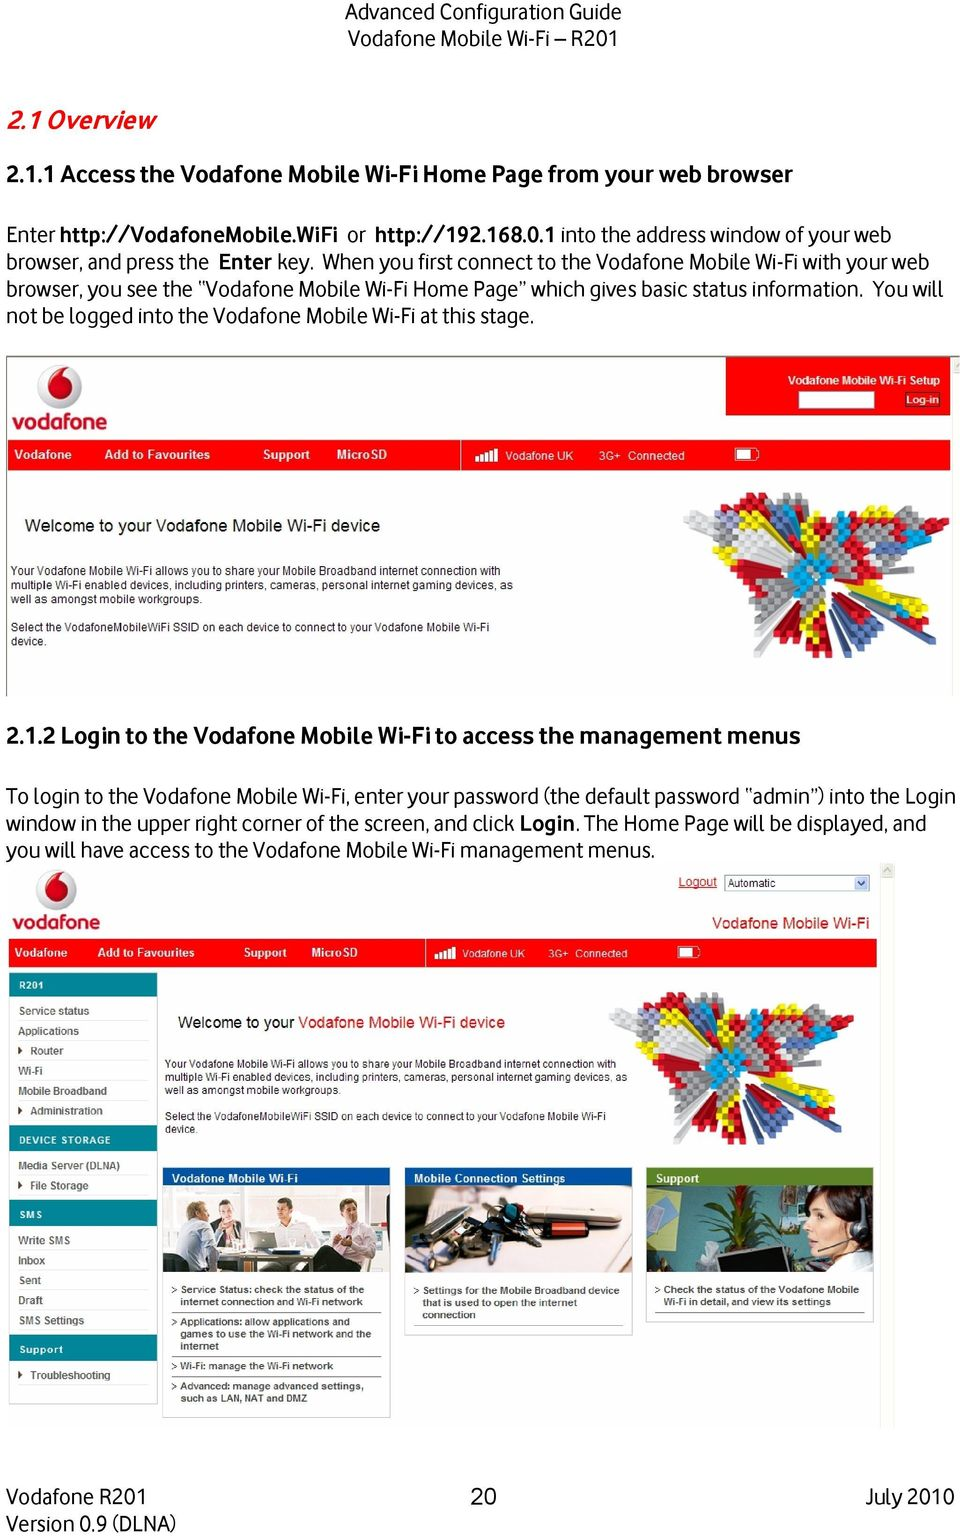 When you first connect to the Vodafone Mobile Wi-Fi with your web browser, you see the Vodafone Mobile Wi-Fi Home Page which gives basic status information.